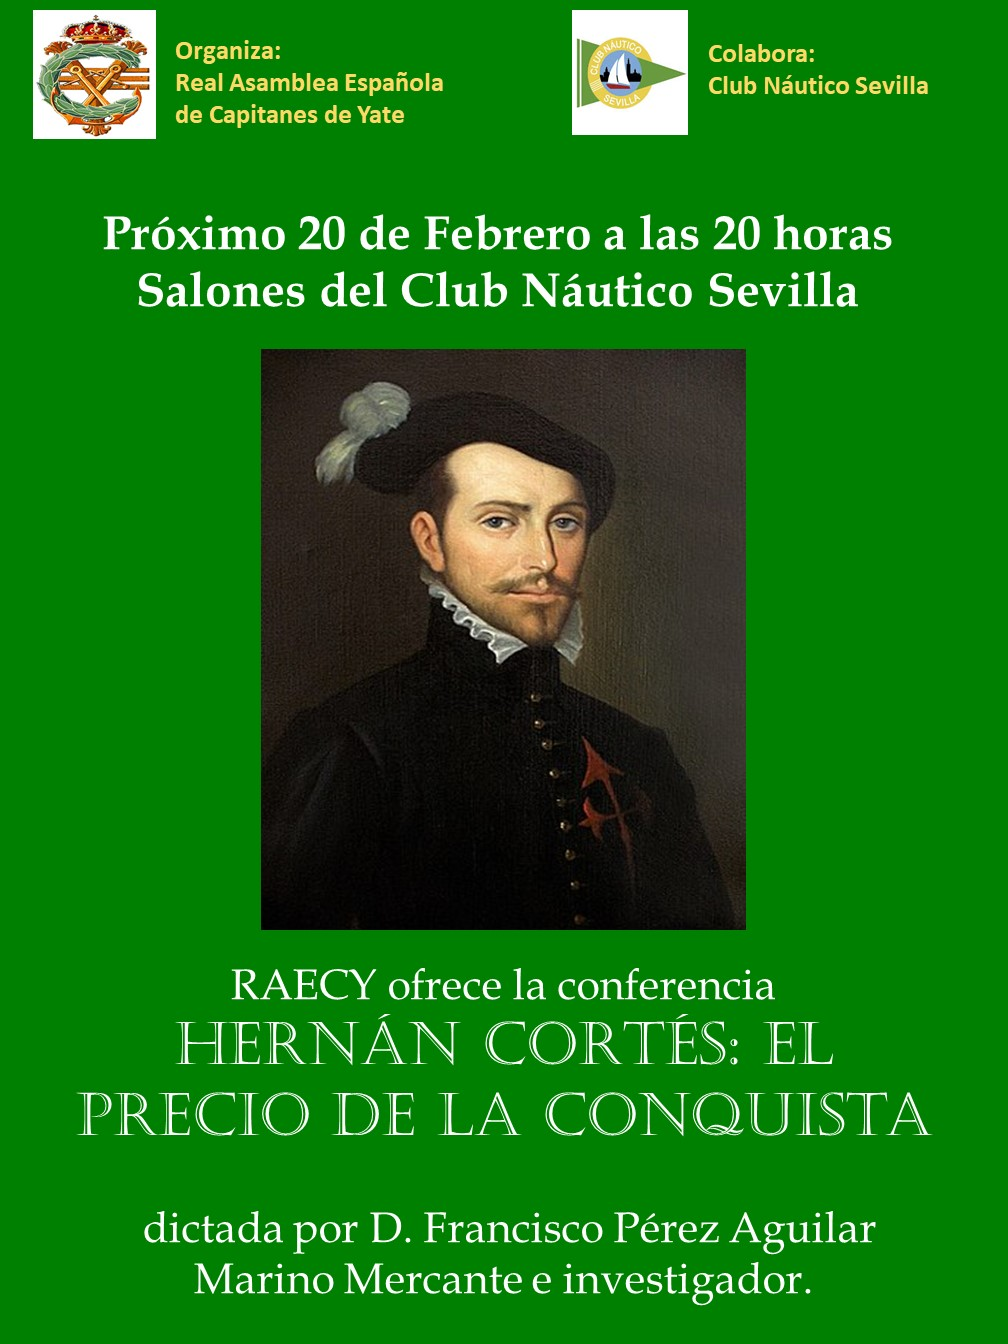 Conferencia Hernán Cortés CNS 20 feb.JPG